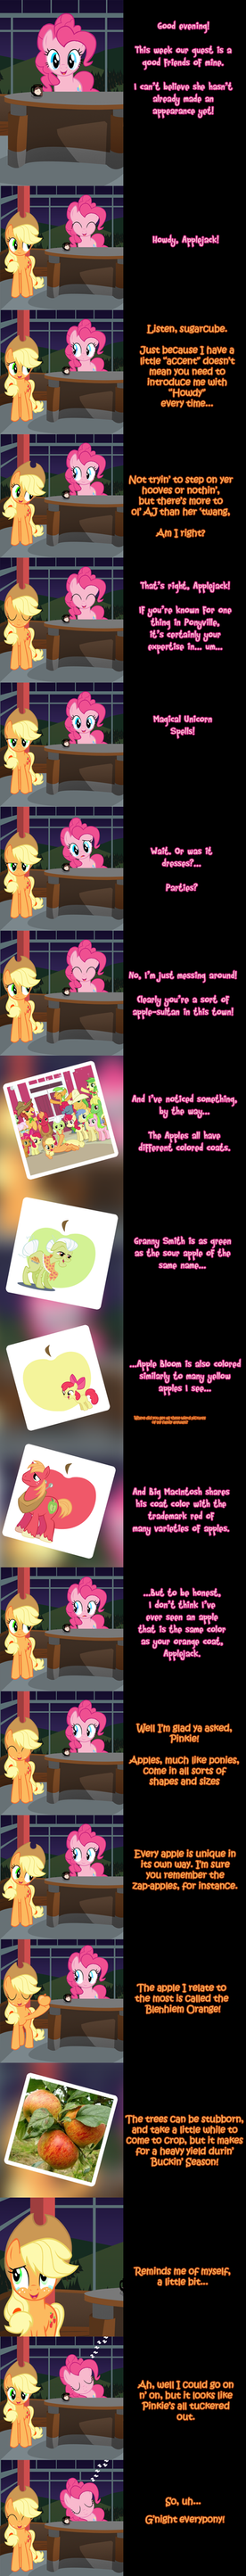 Pinkie Says Goodnight - Applejack's Apple, Jack. by Undead-Niklos